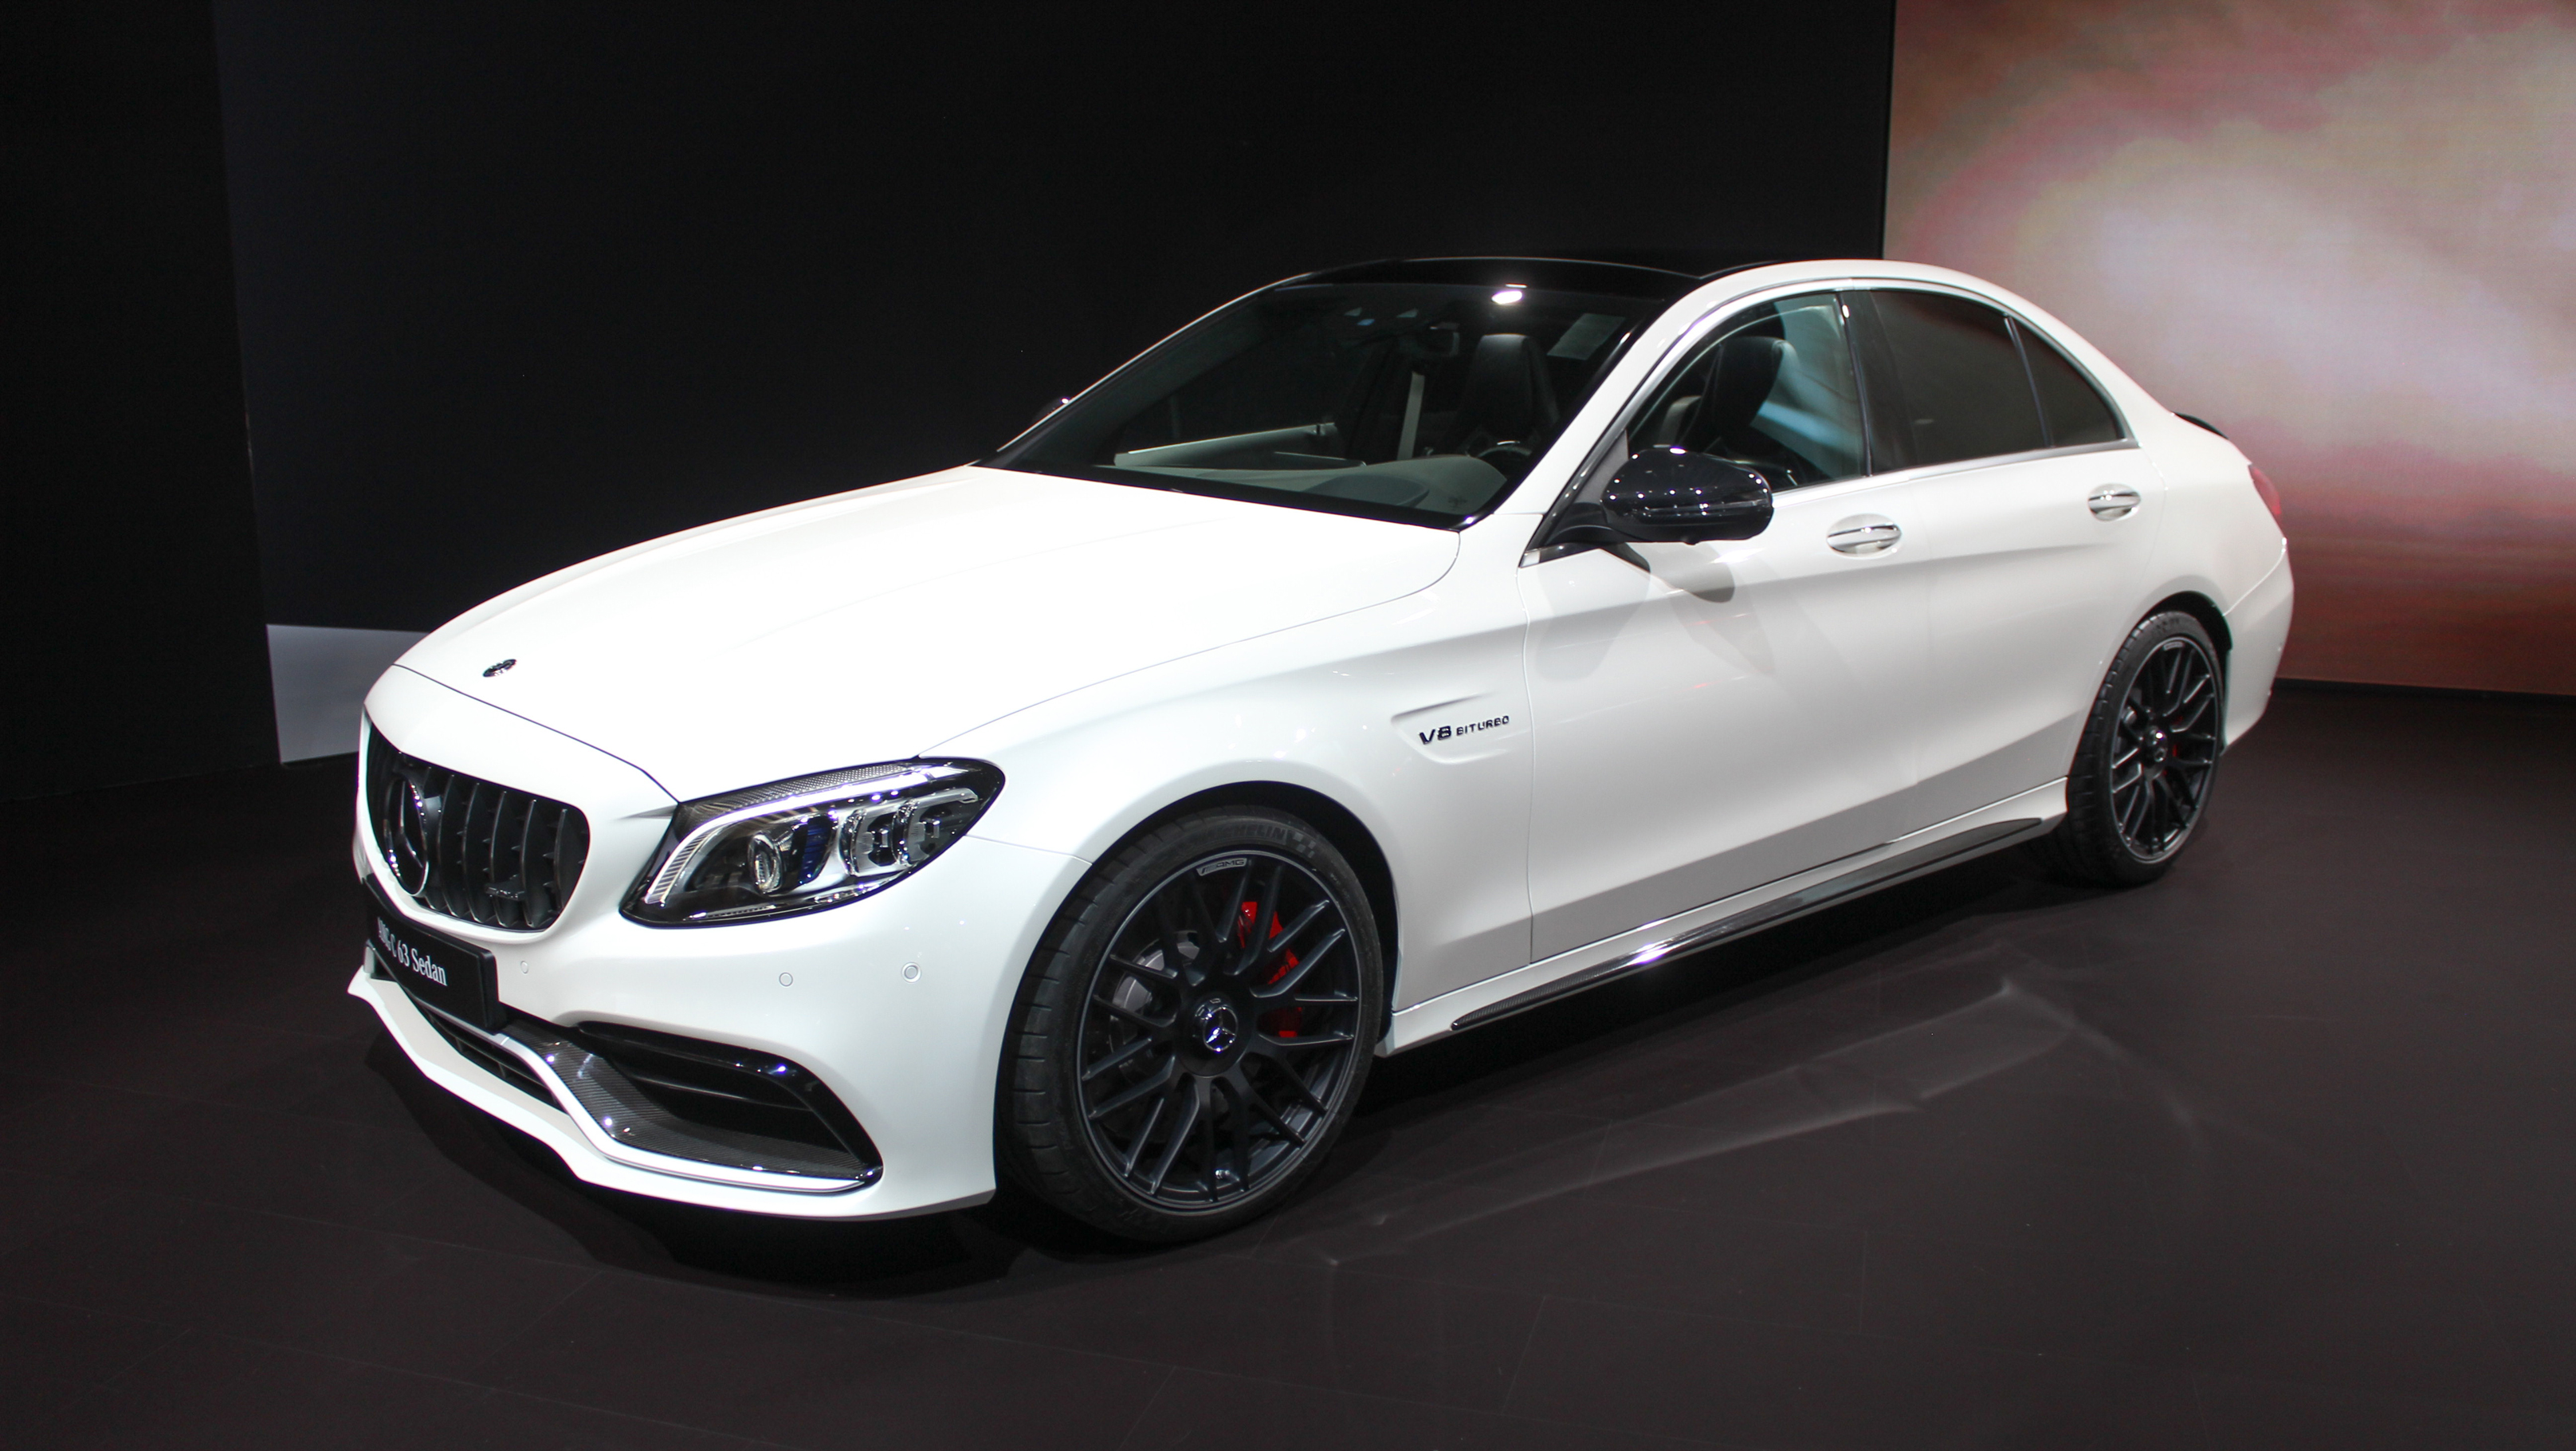 2019 Mercedes C Class s AMG d Ready For the Track – WHEELS